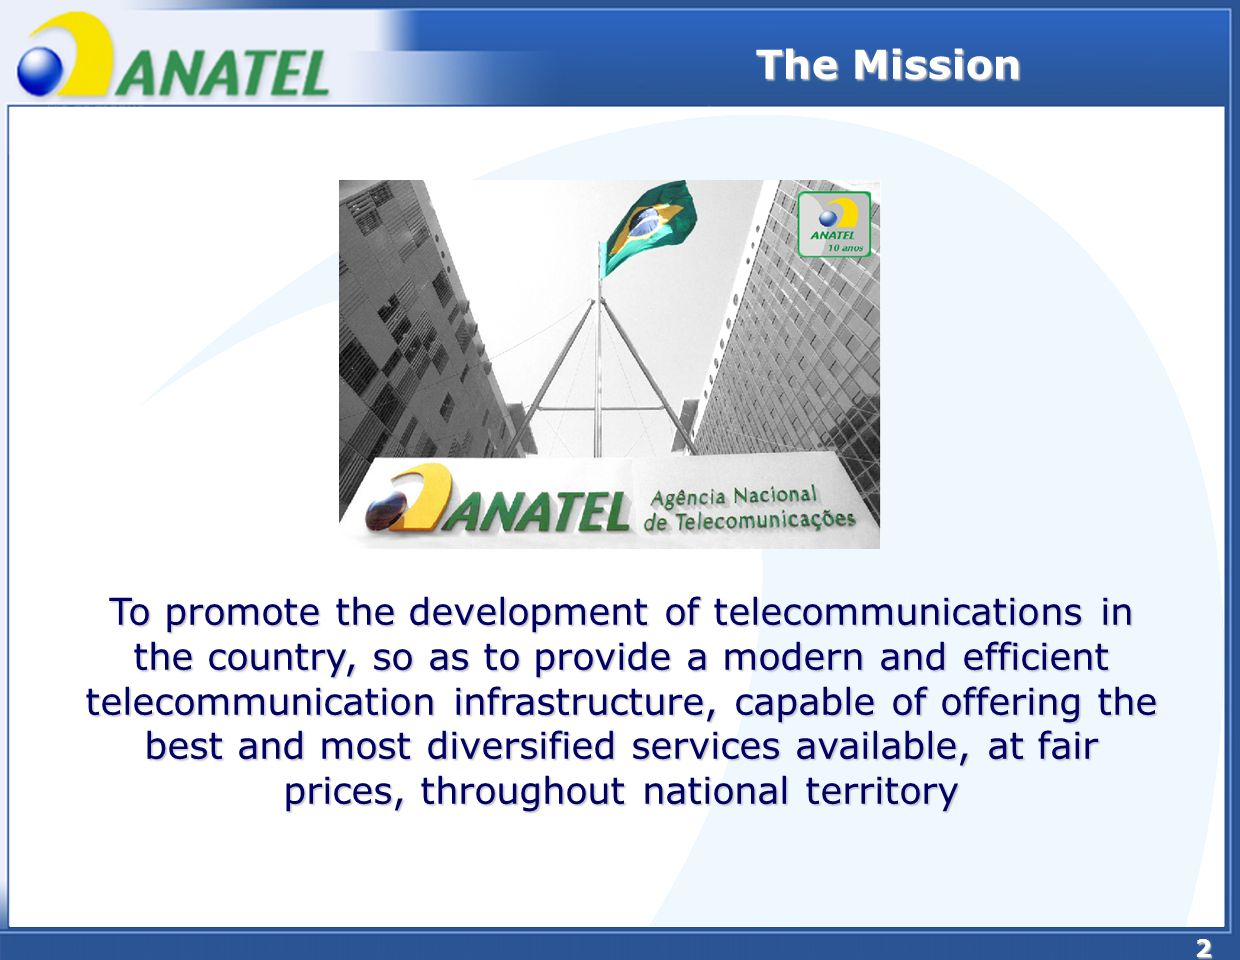 2 To promote the development of telecommunications in the country, so as to provide a modern and efficient telecommunication infrastructure, capable of offering the best and most diversified services available, at fair prices, throughout national territory The Mission